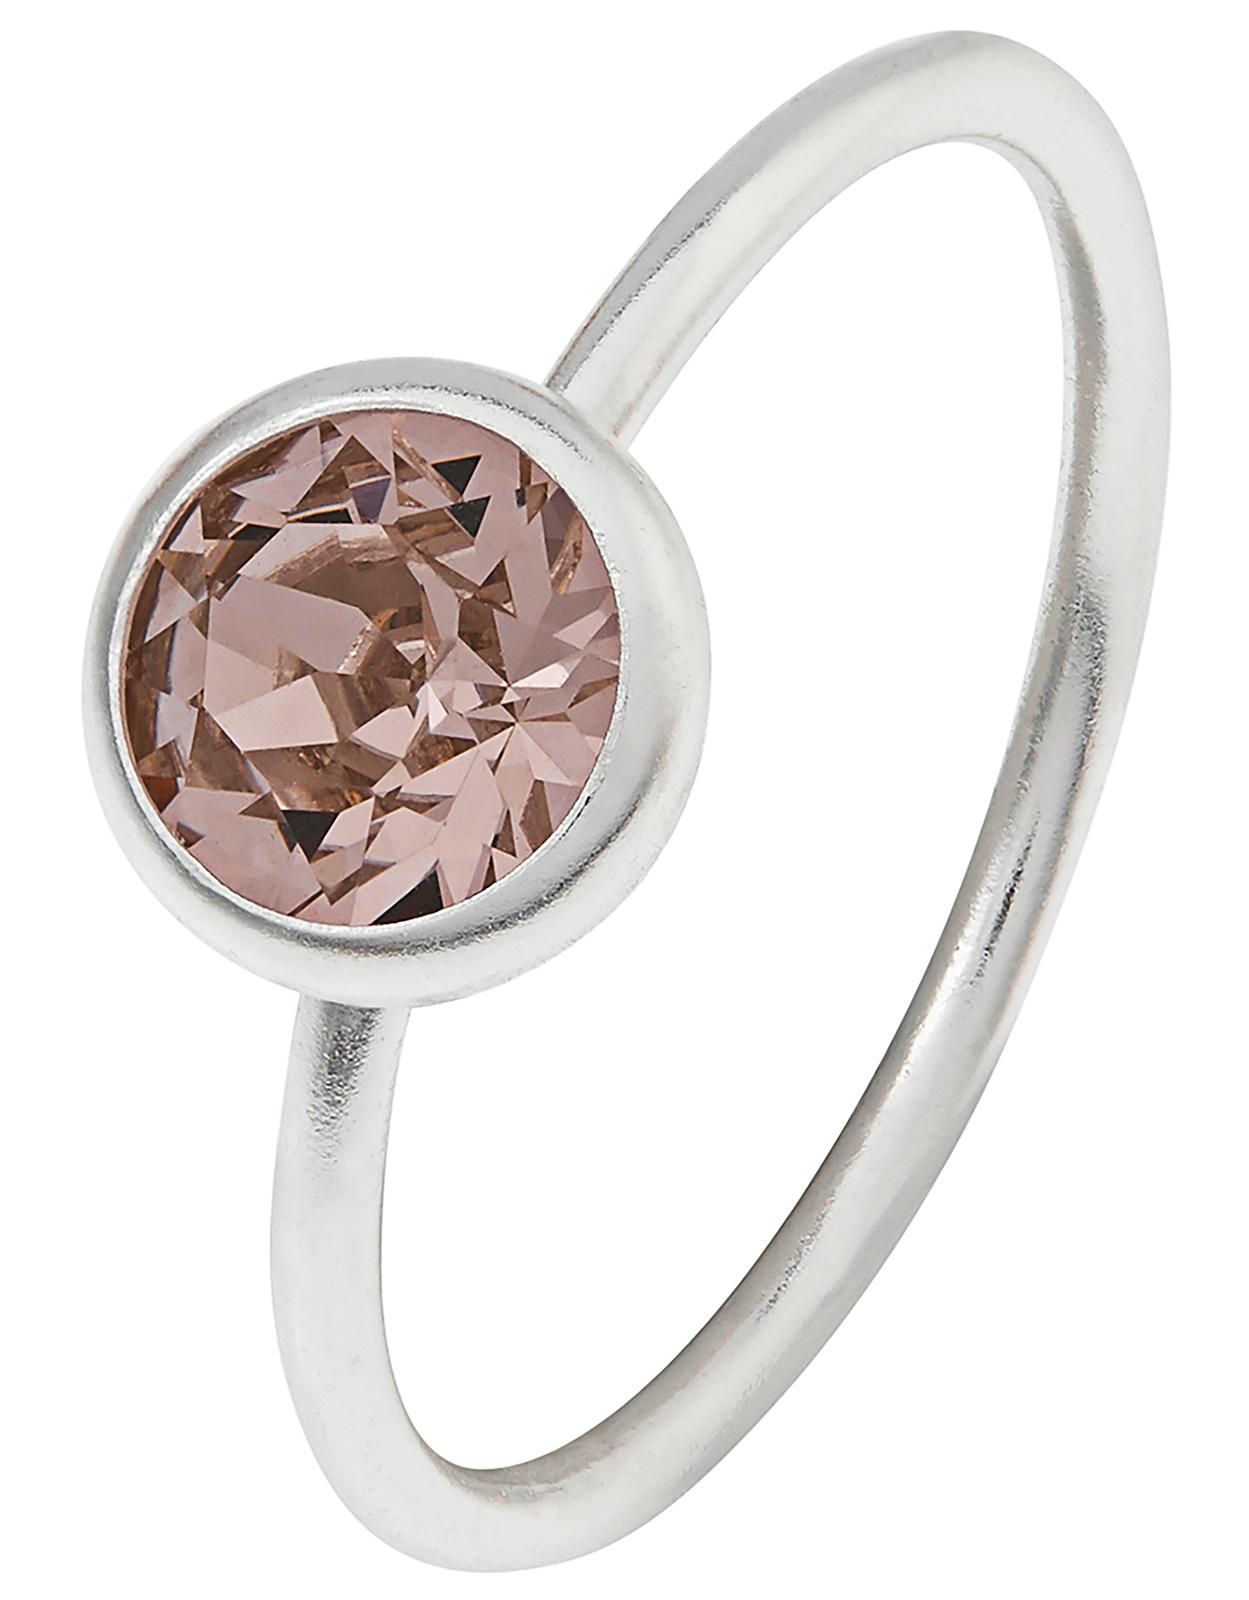 6a4cb782bd1ab Accessorize Pink Sterling Silver Solitaire Ring With Swarovski® Crystal